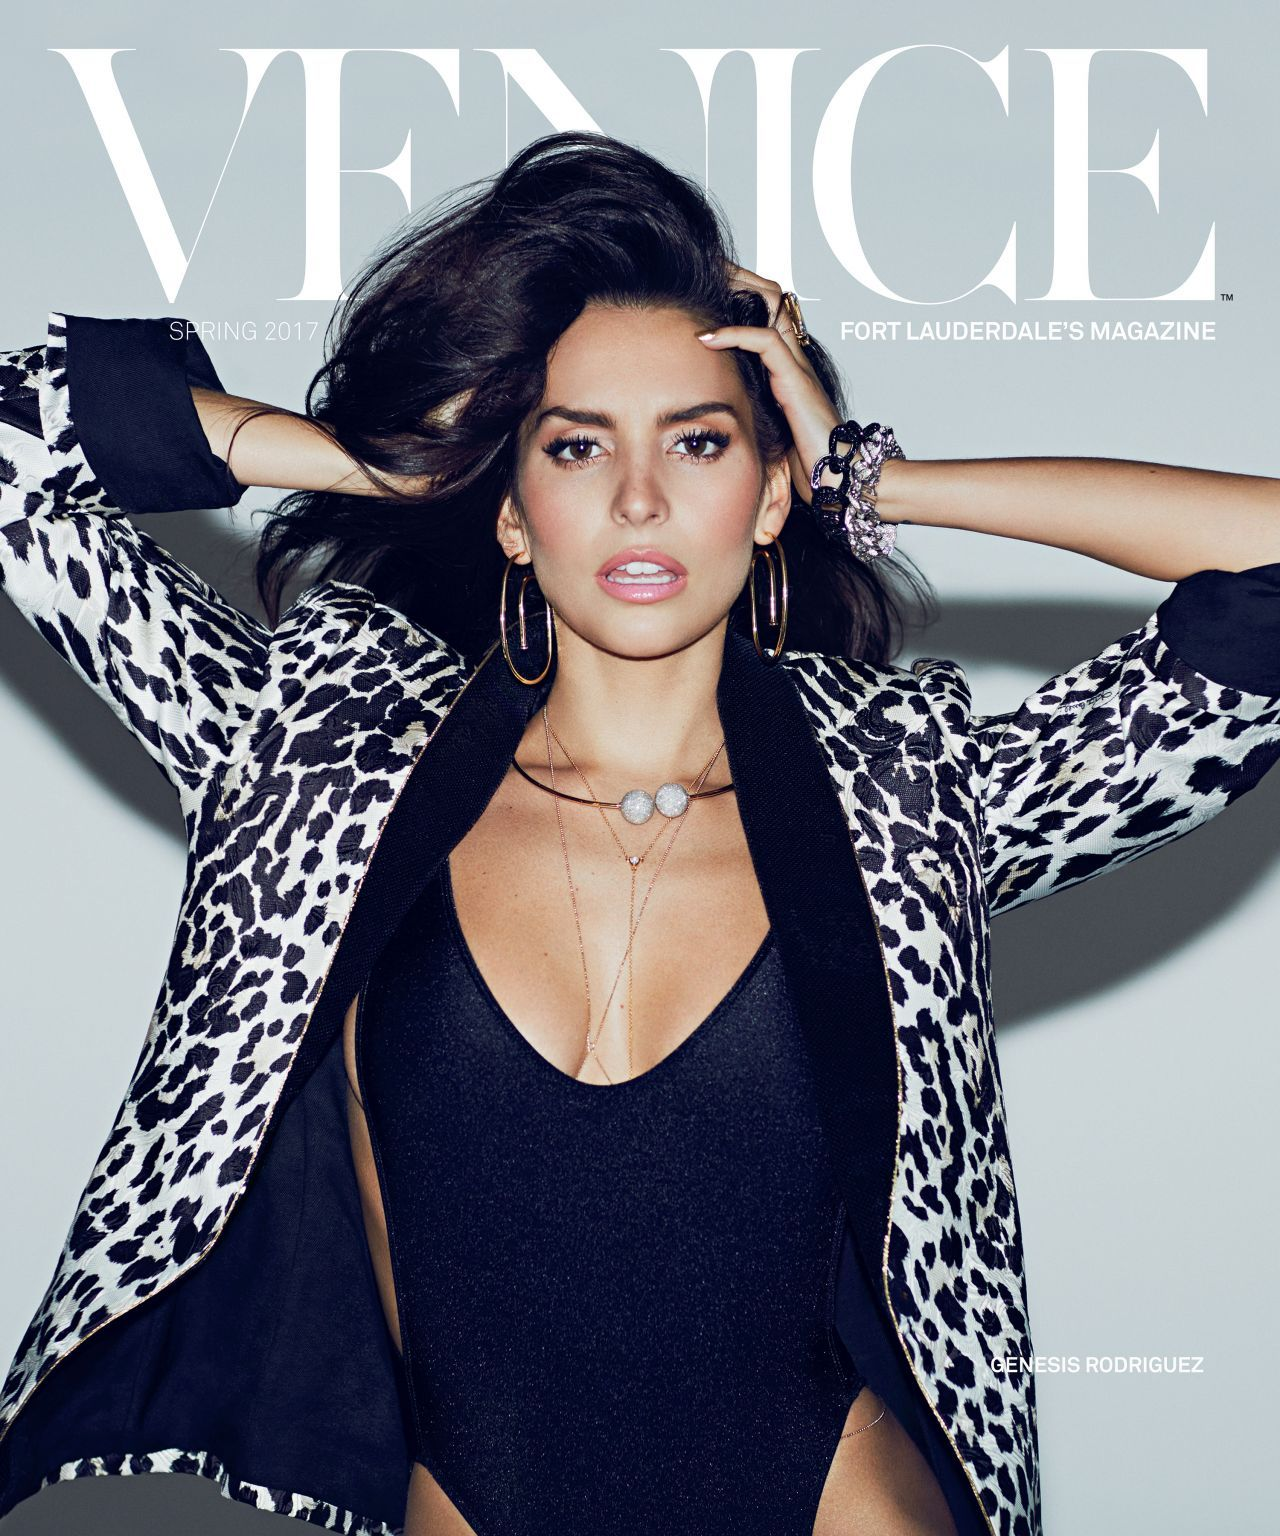 Genesis Rodriguez Nude throughout issue, #magazine genesis rodriguez – venice magazine (ft